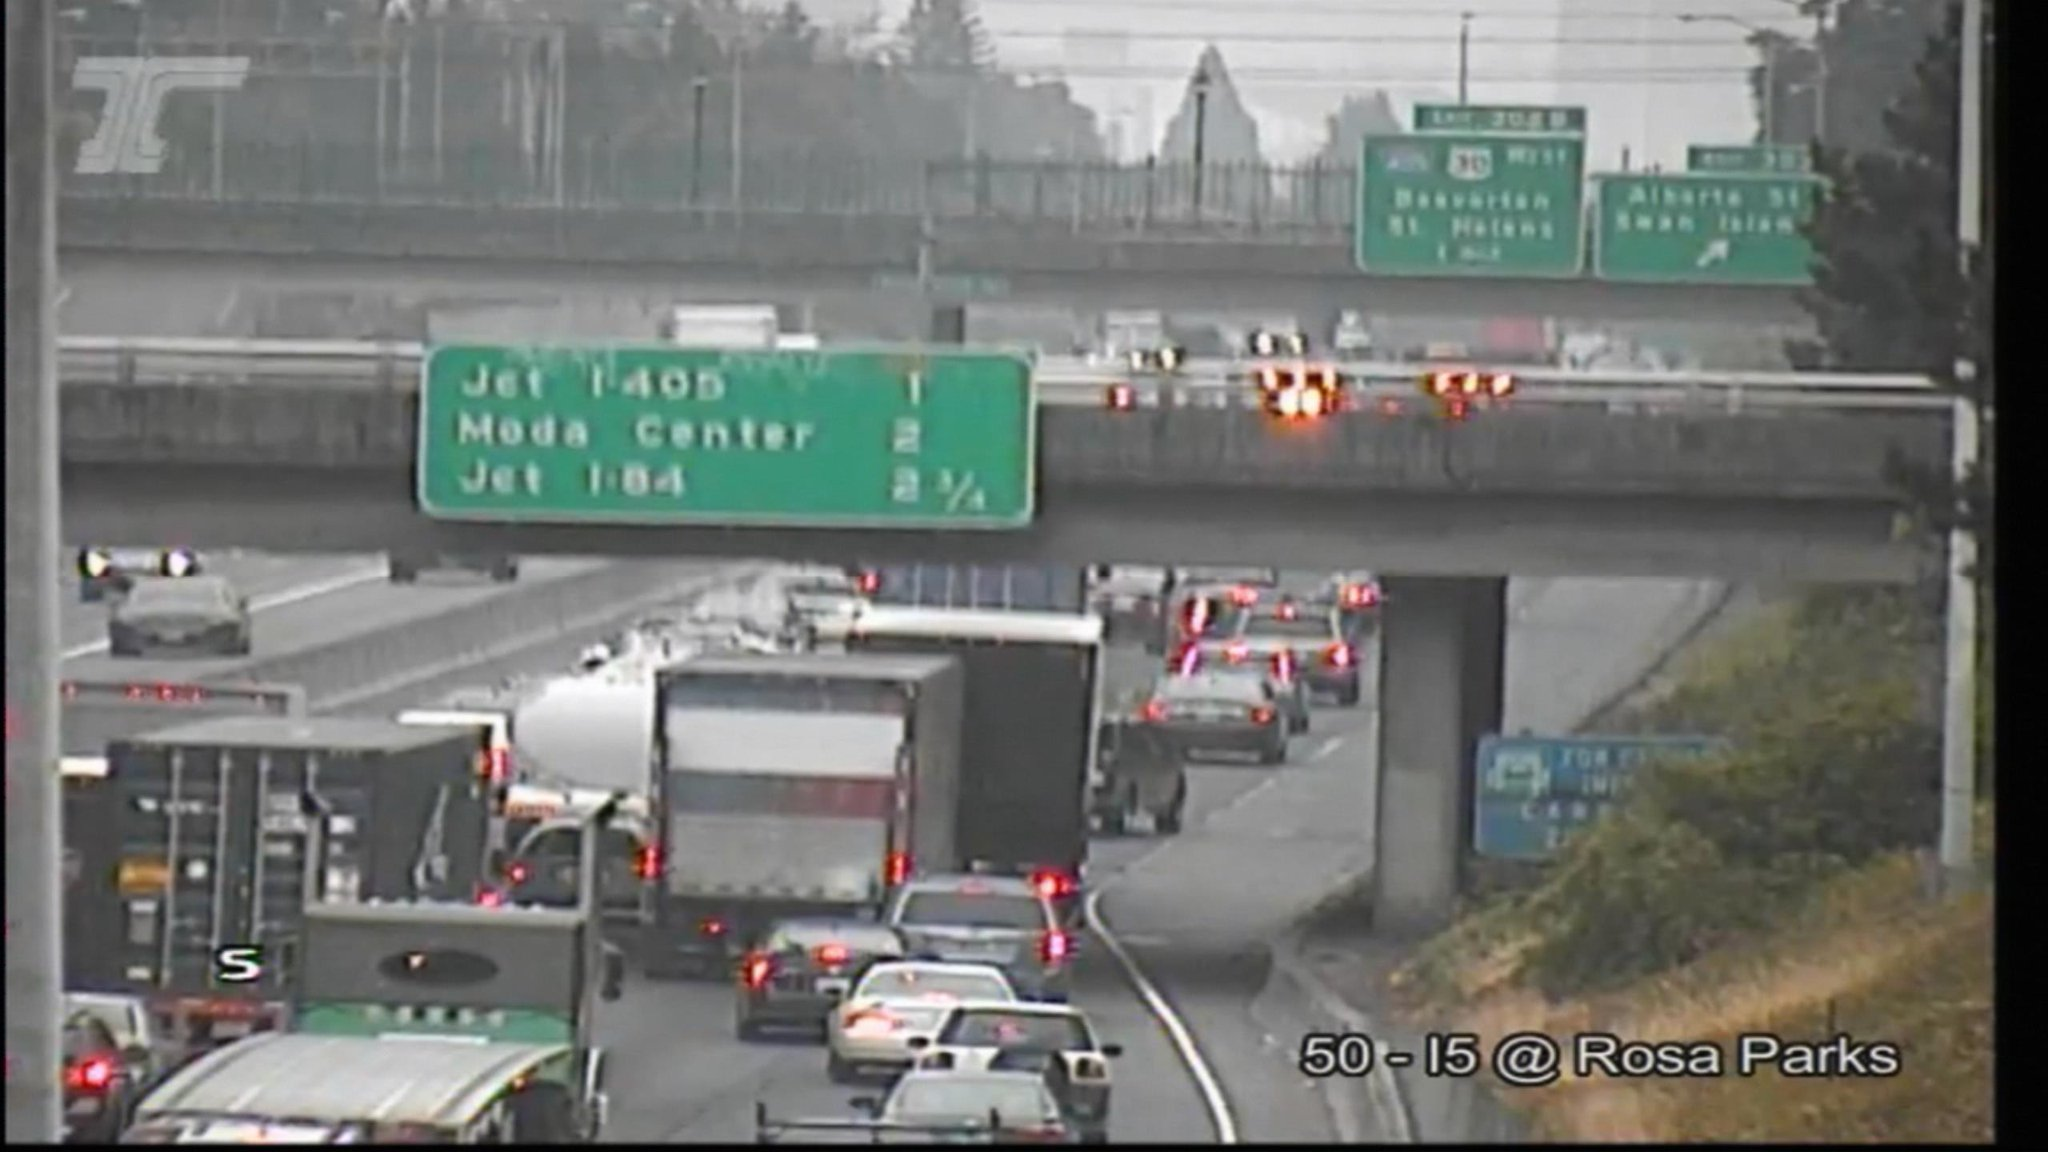 Two lanes of I-5 southbound closed Tuesday morning because of a leaking food grease truck, police said. ODOT photo